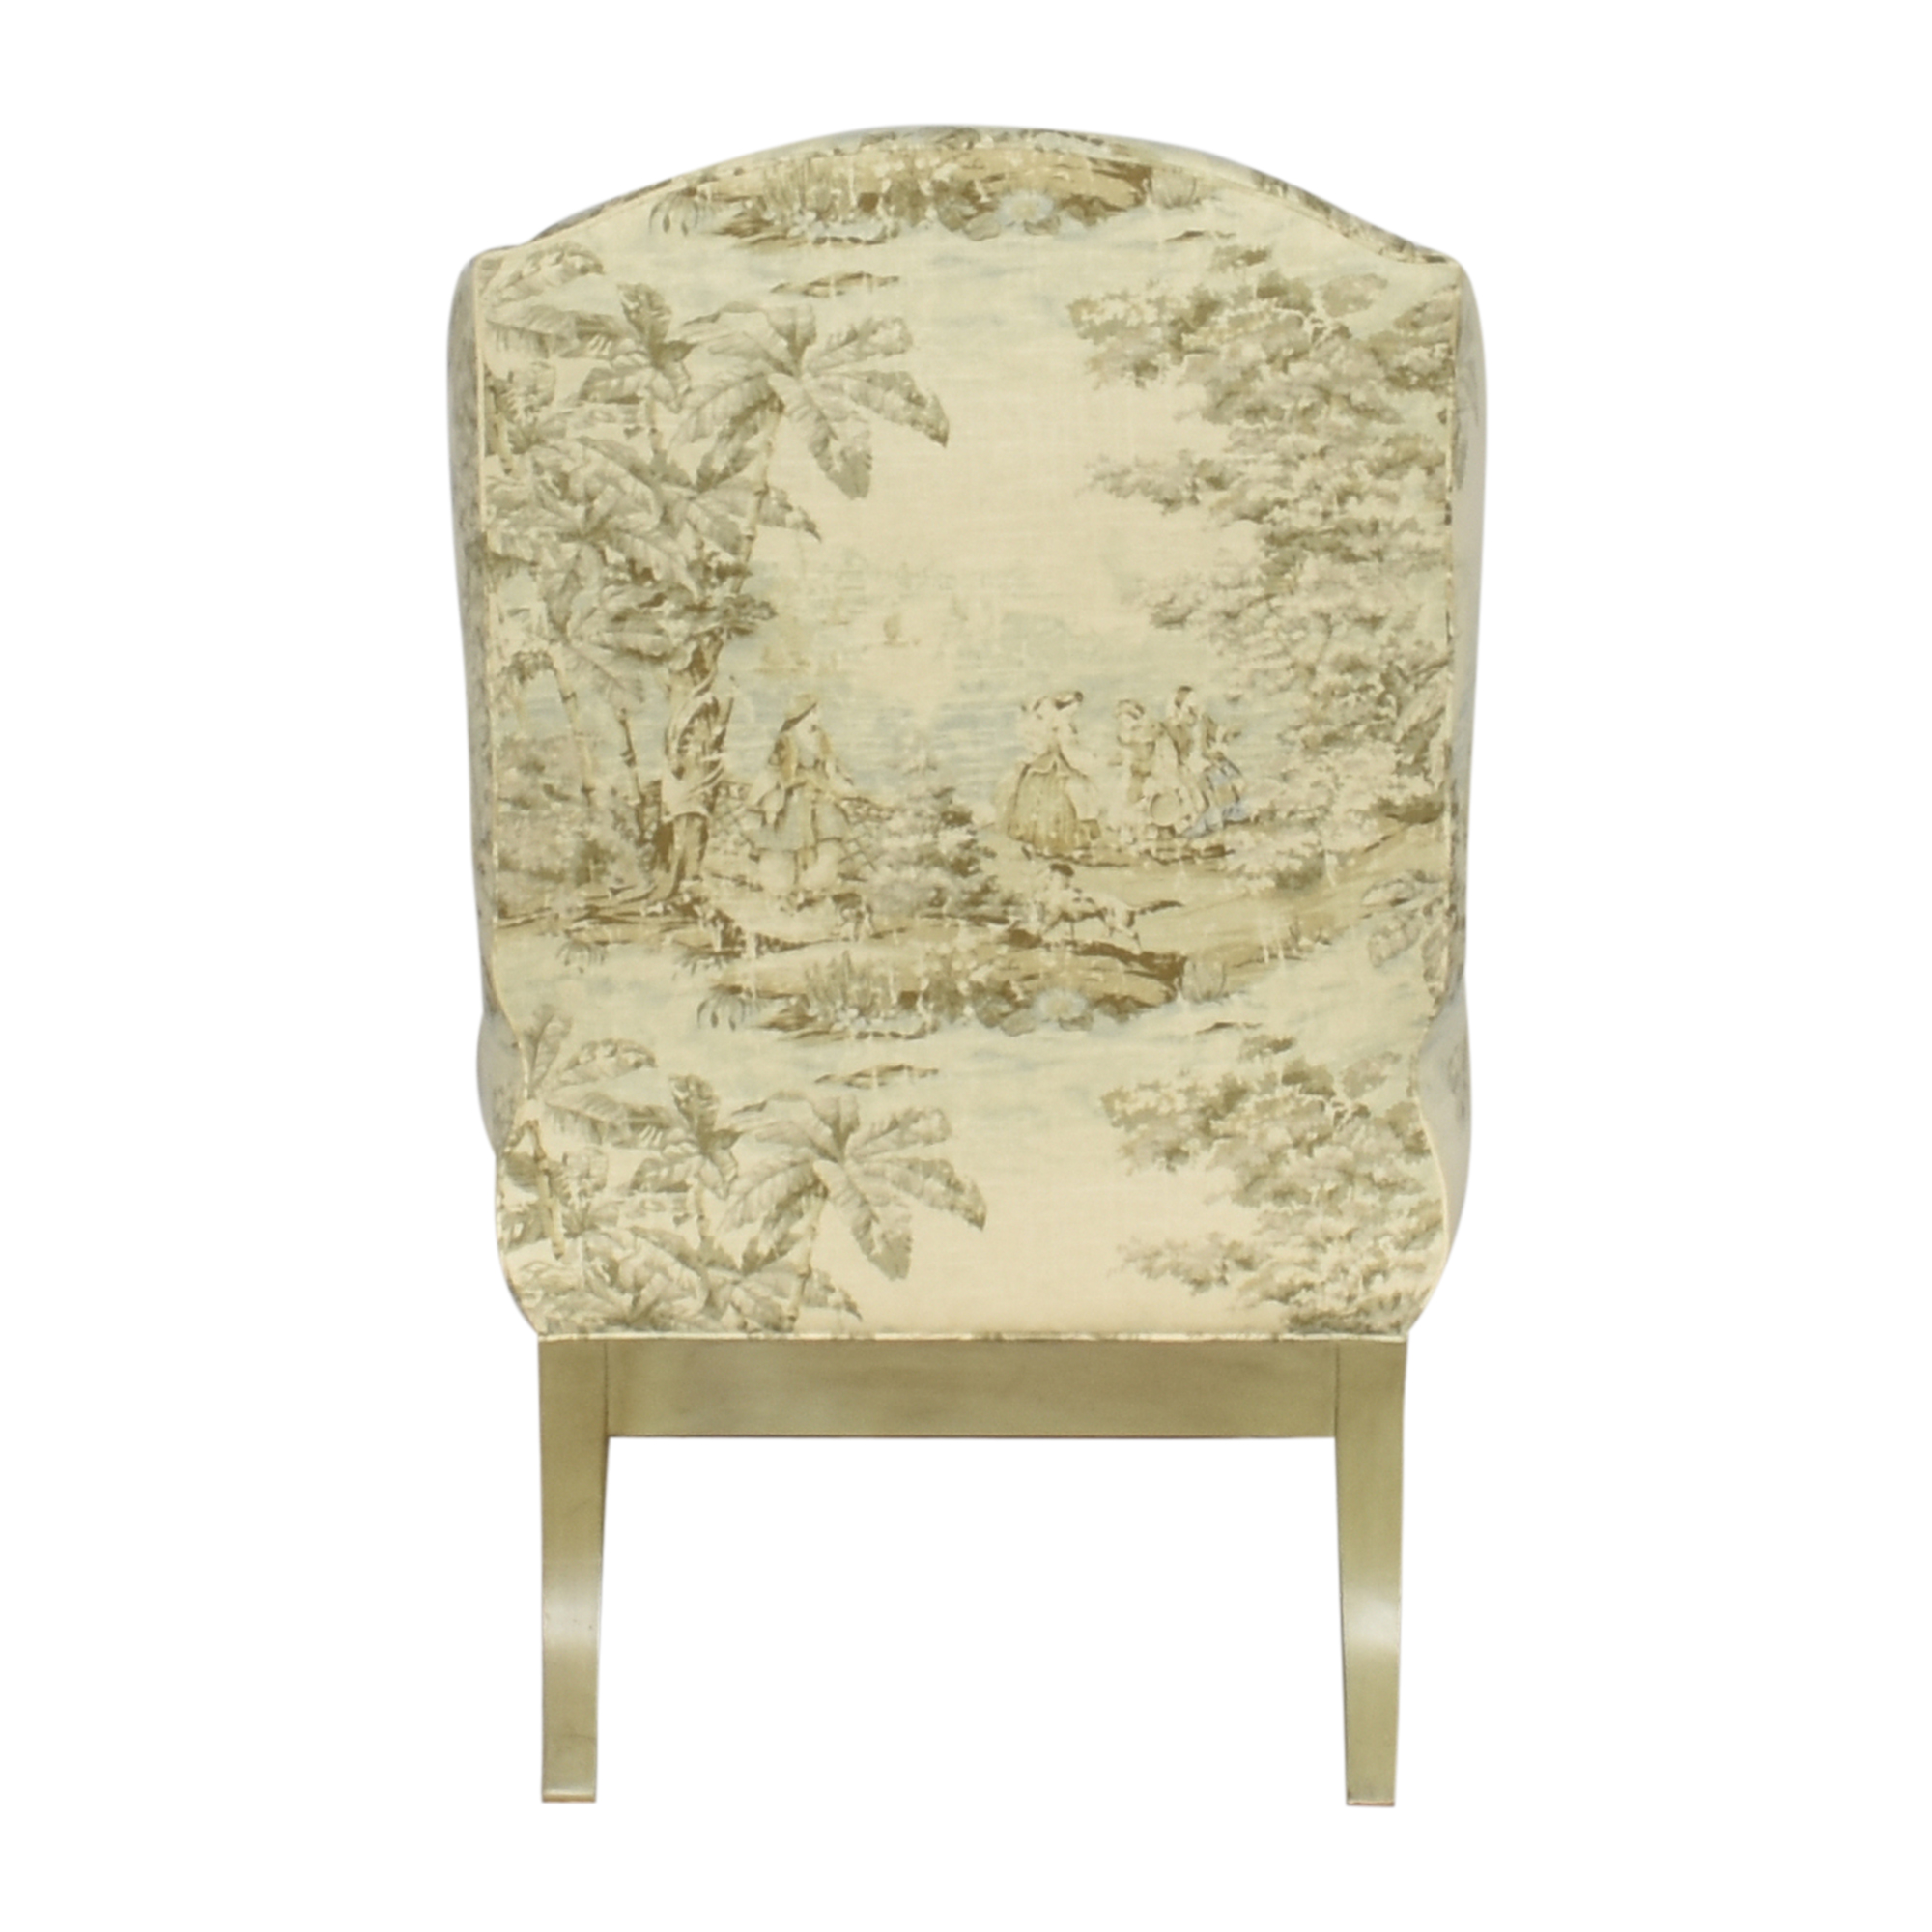 Hickory Chair Hickory Chair Accent Chair for sale